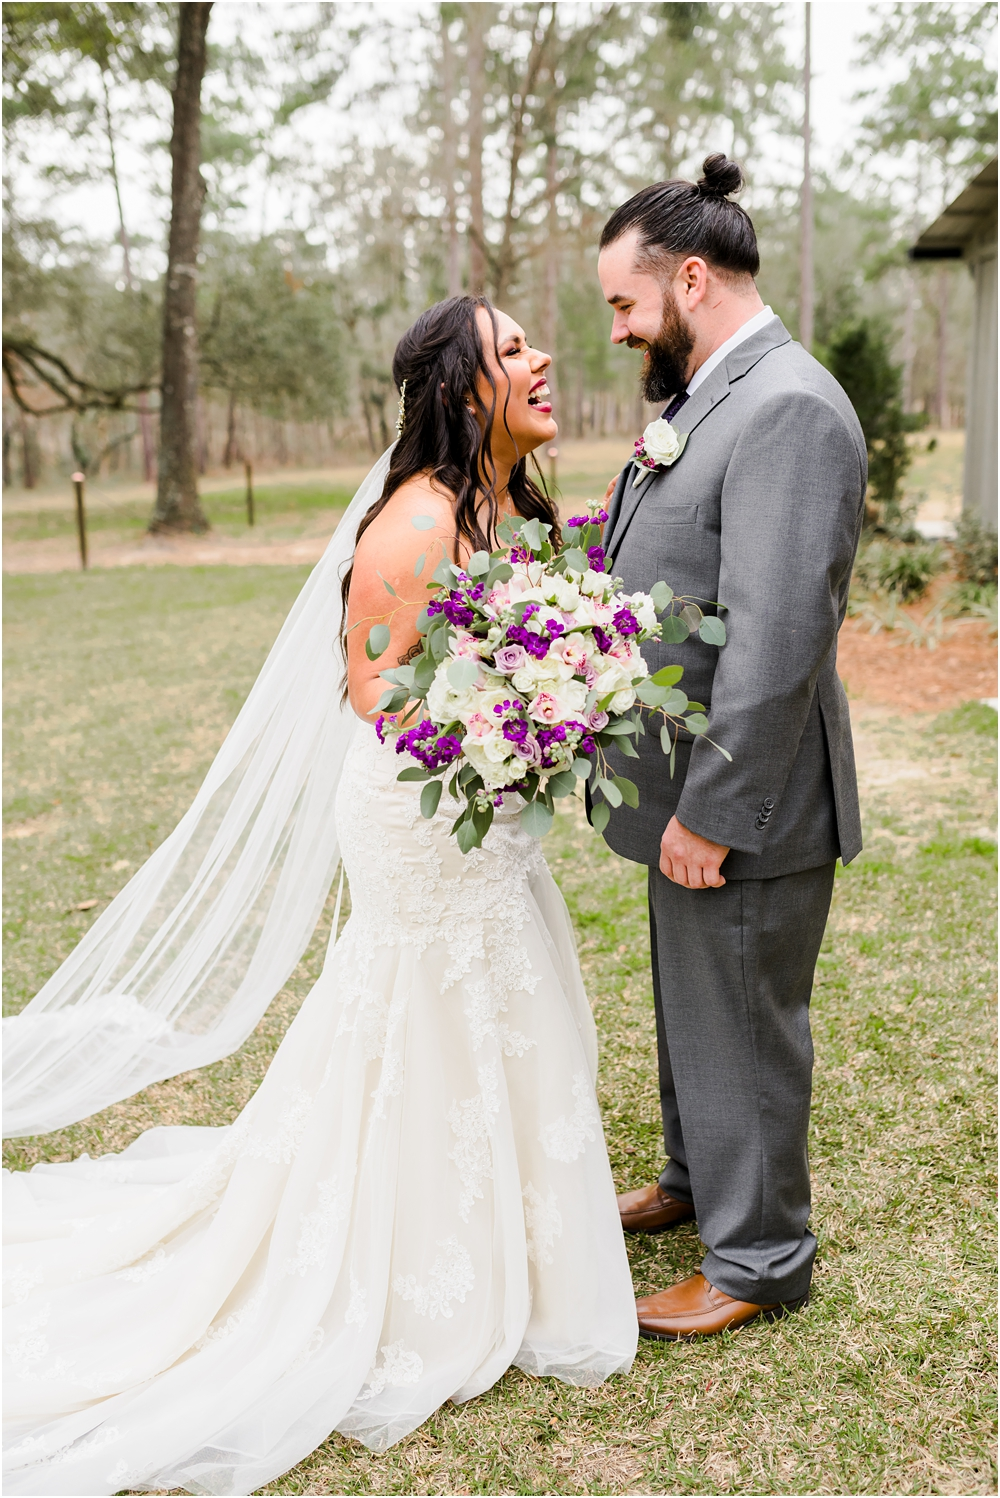 loblolly-rise-tallahassee-wedding-kiersten-stevenson-photography-54.jpg